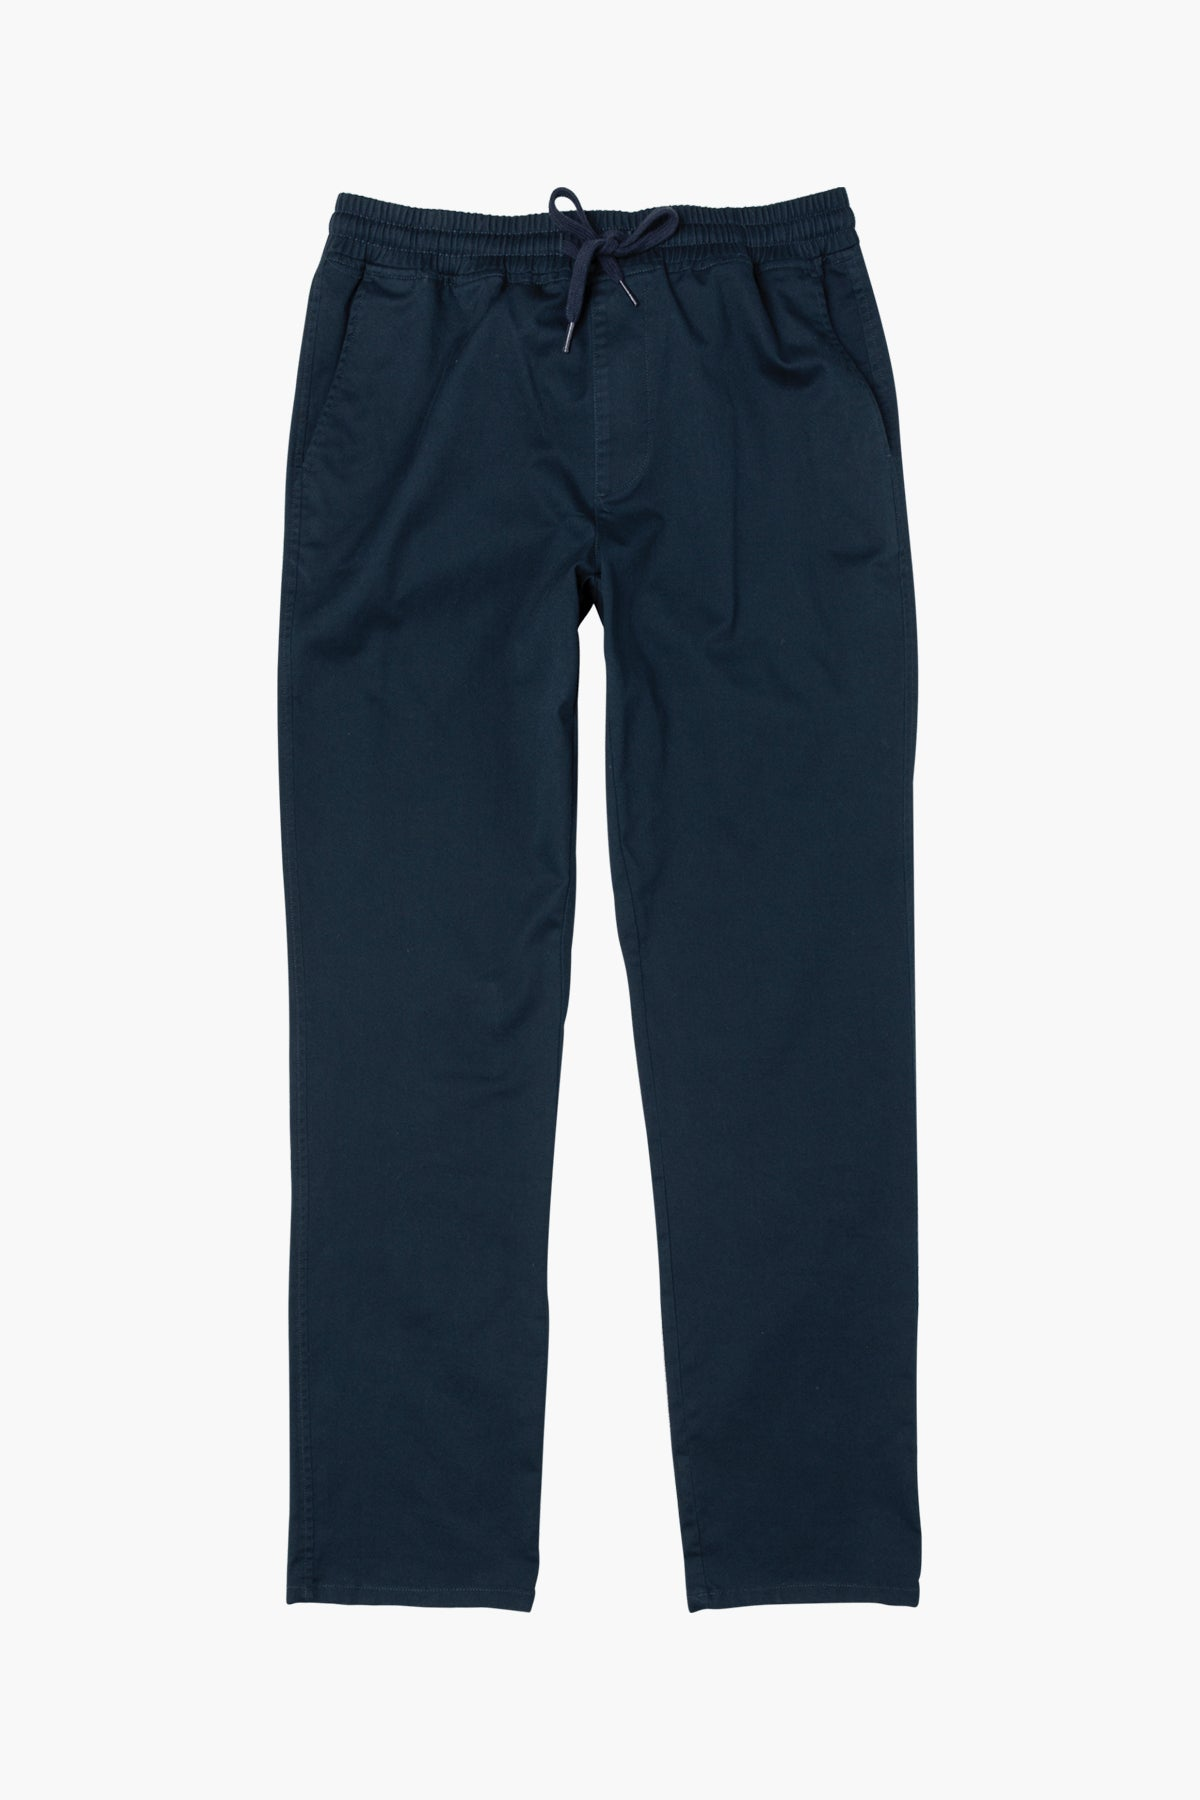 RVCA Weekend Elastic Pant - Navy Marine